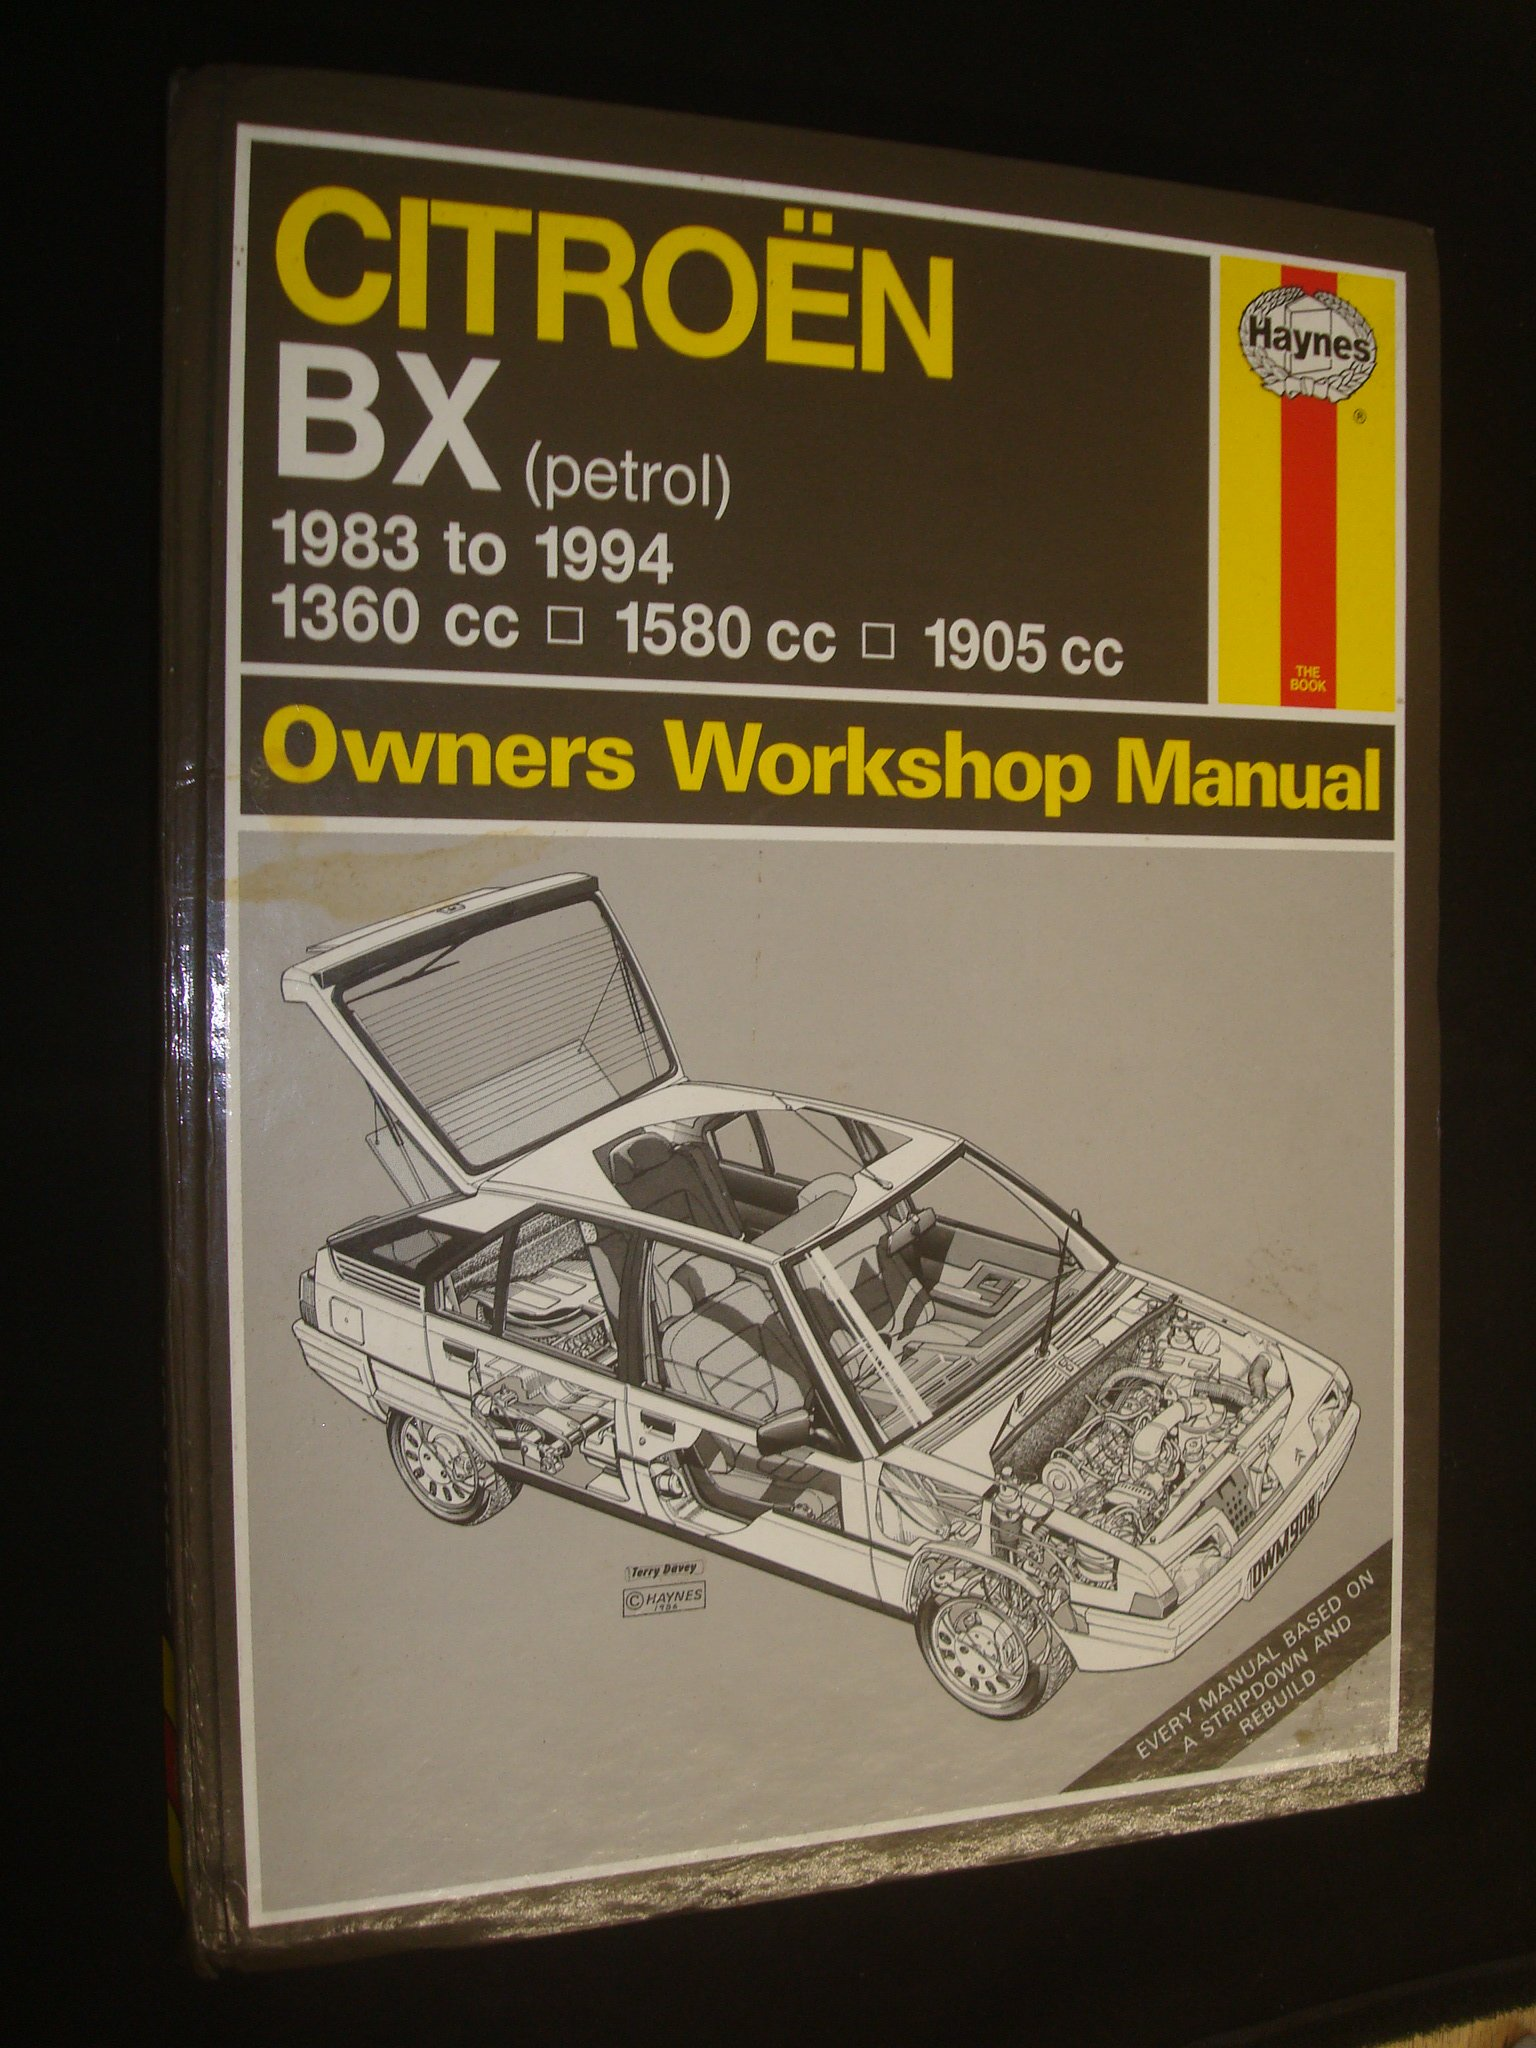 citroen bx owner s workshop manual haynes owners workshop manuals rh amazon com Haynes Repair Manuals Online Haynes Repair Manual 1987 Dodge Ram 100